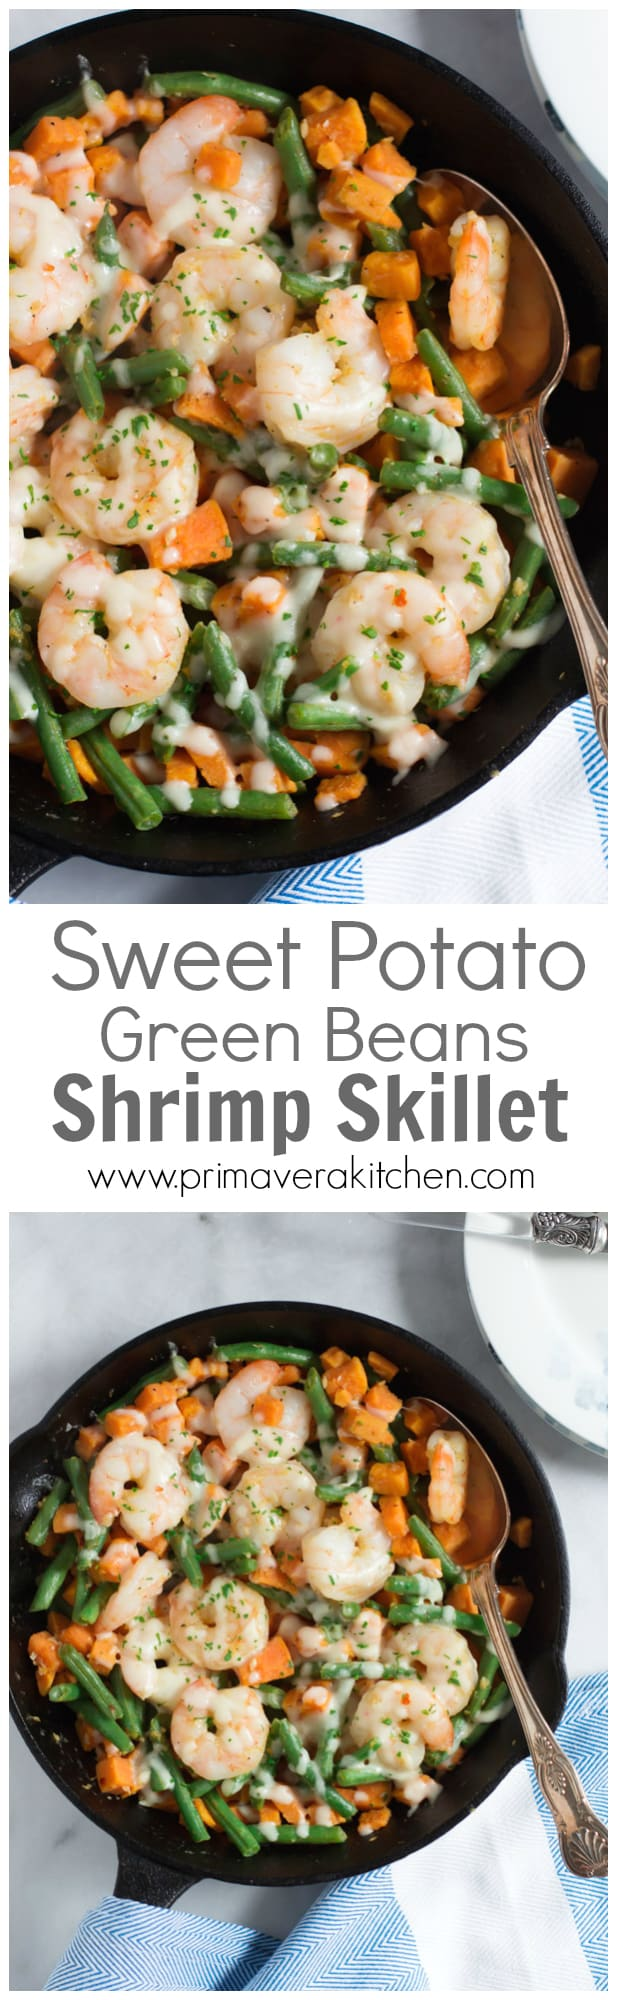 Shrimp Skillet with Sweet Potato and Green Beans - This Shrimp Skillet is made with sweet potato and green beans, which uses only one pot and it is done in less than 30mins.